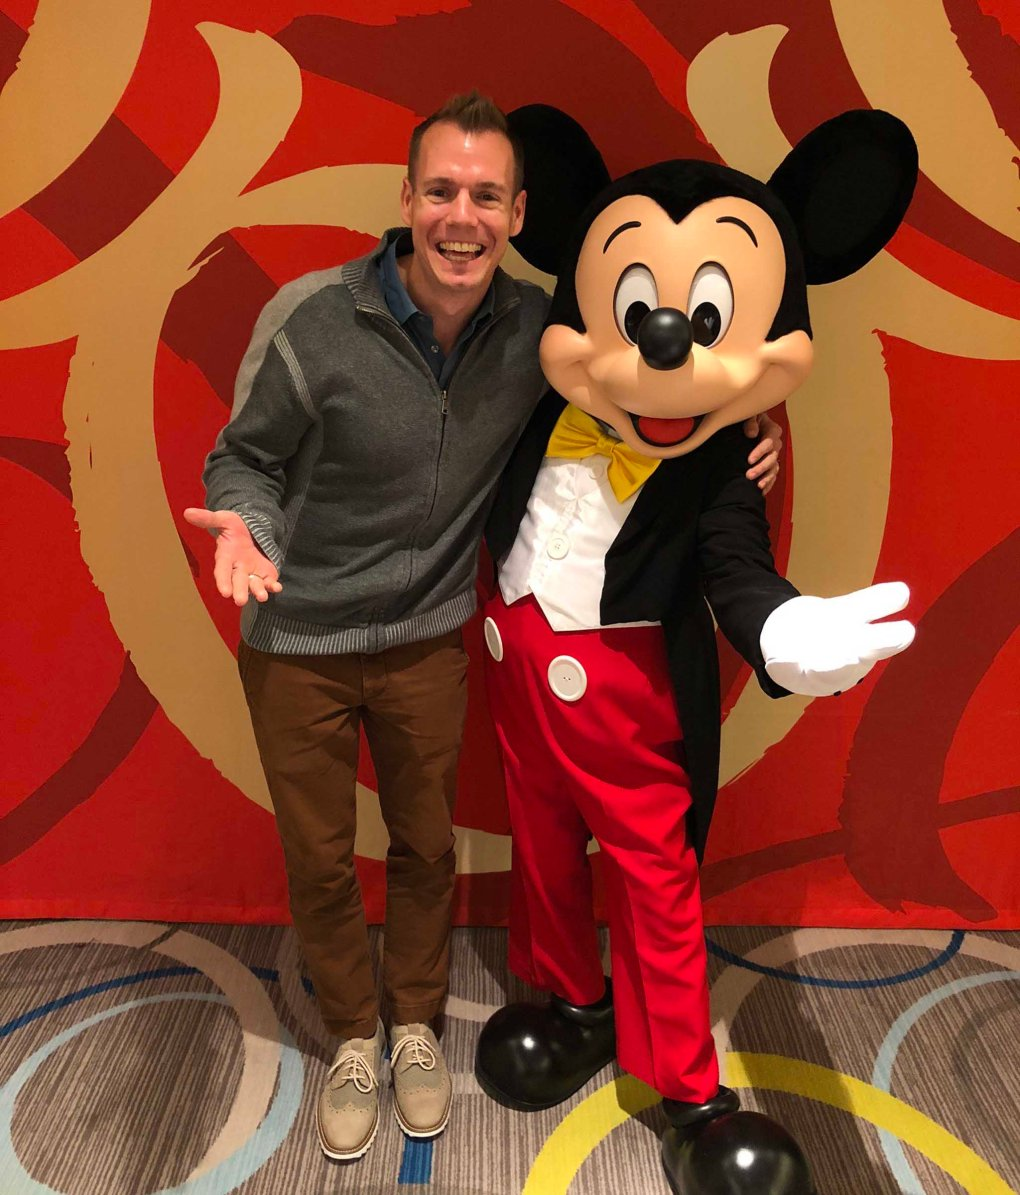 Magic Lamp Vacations plans Disney vacations for LGBTQ families and individuals